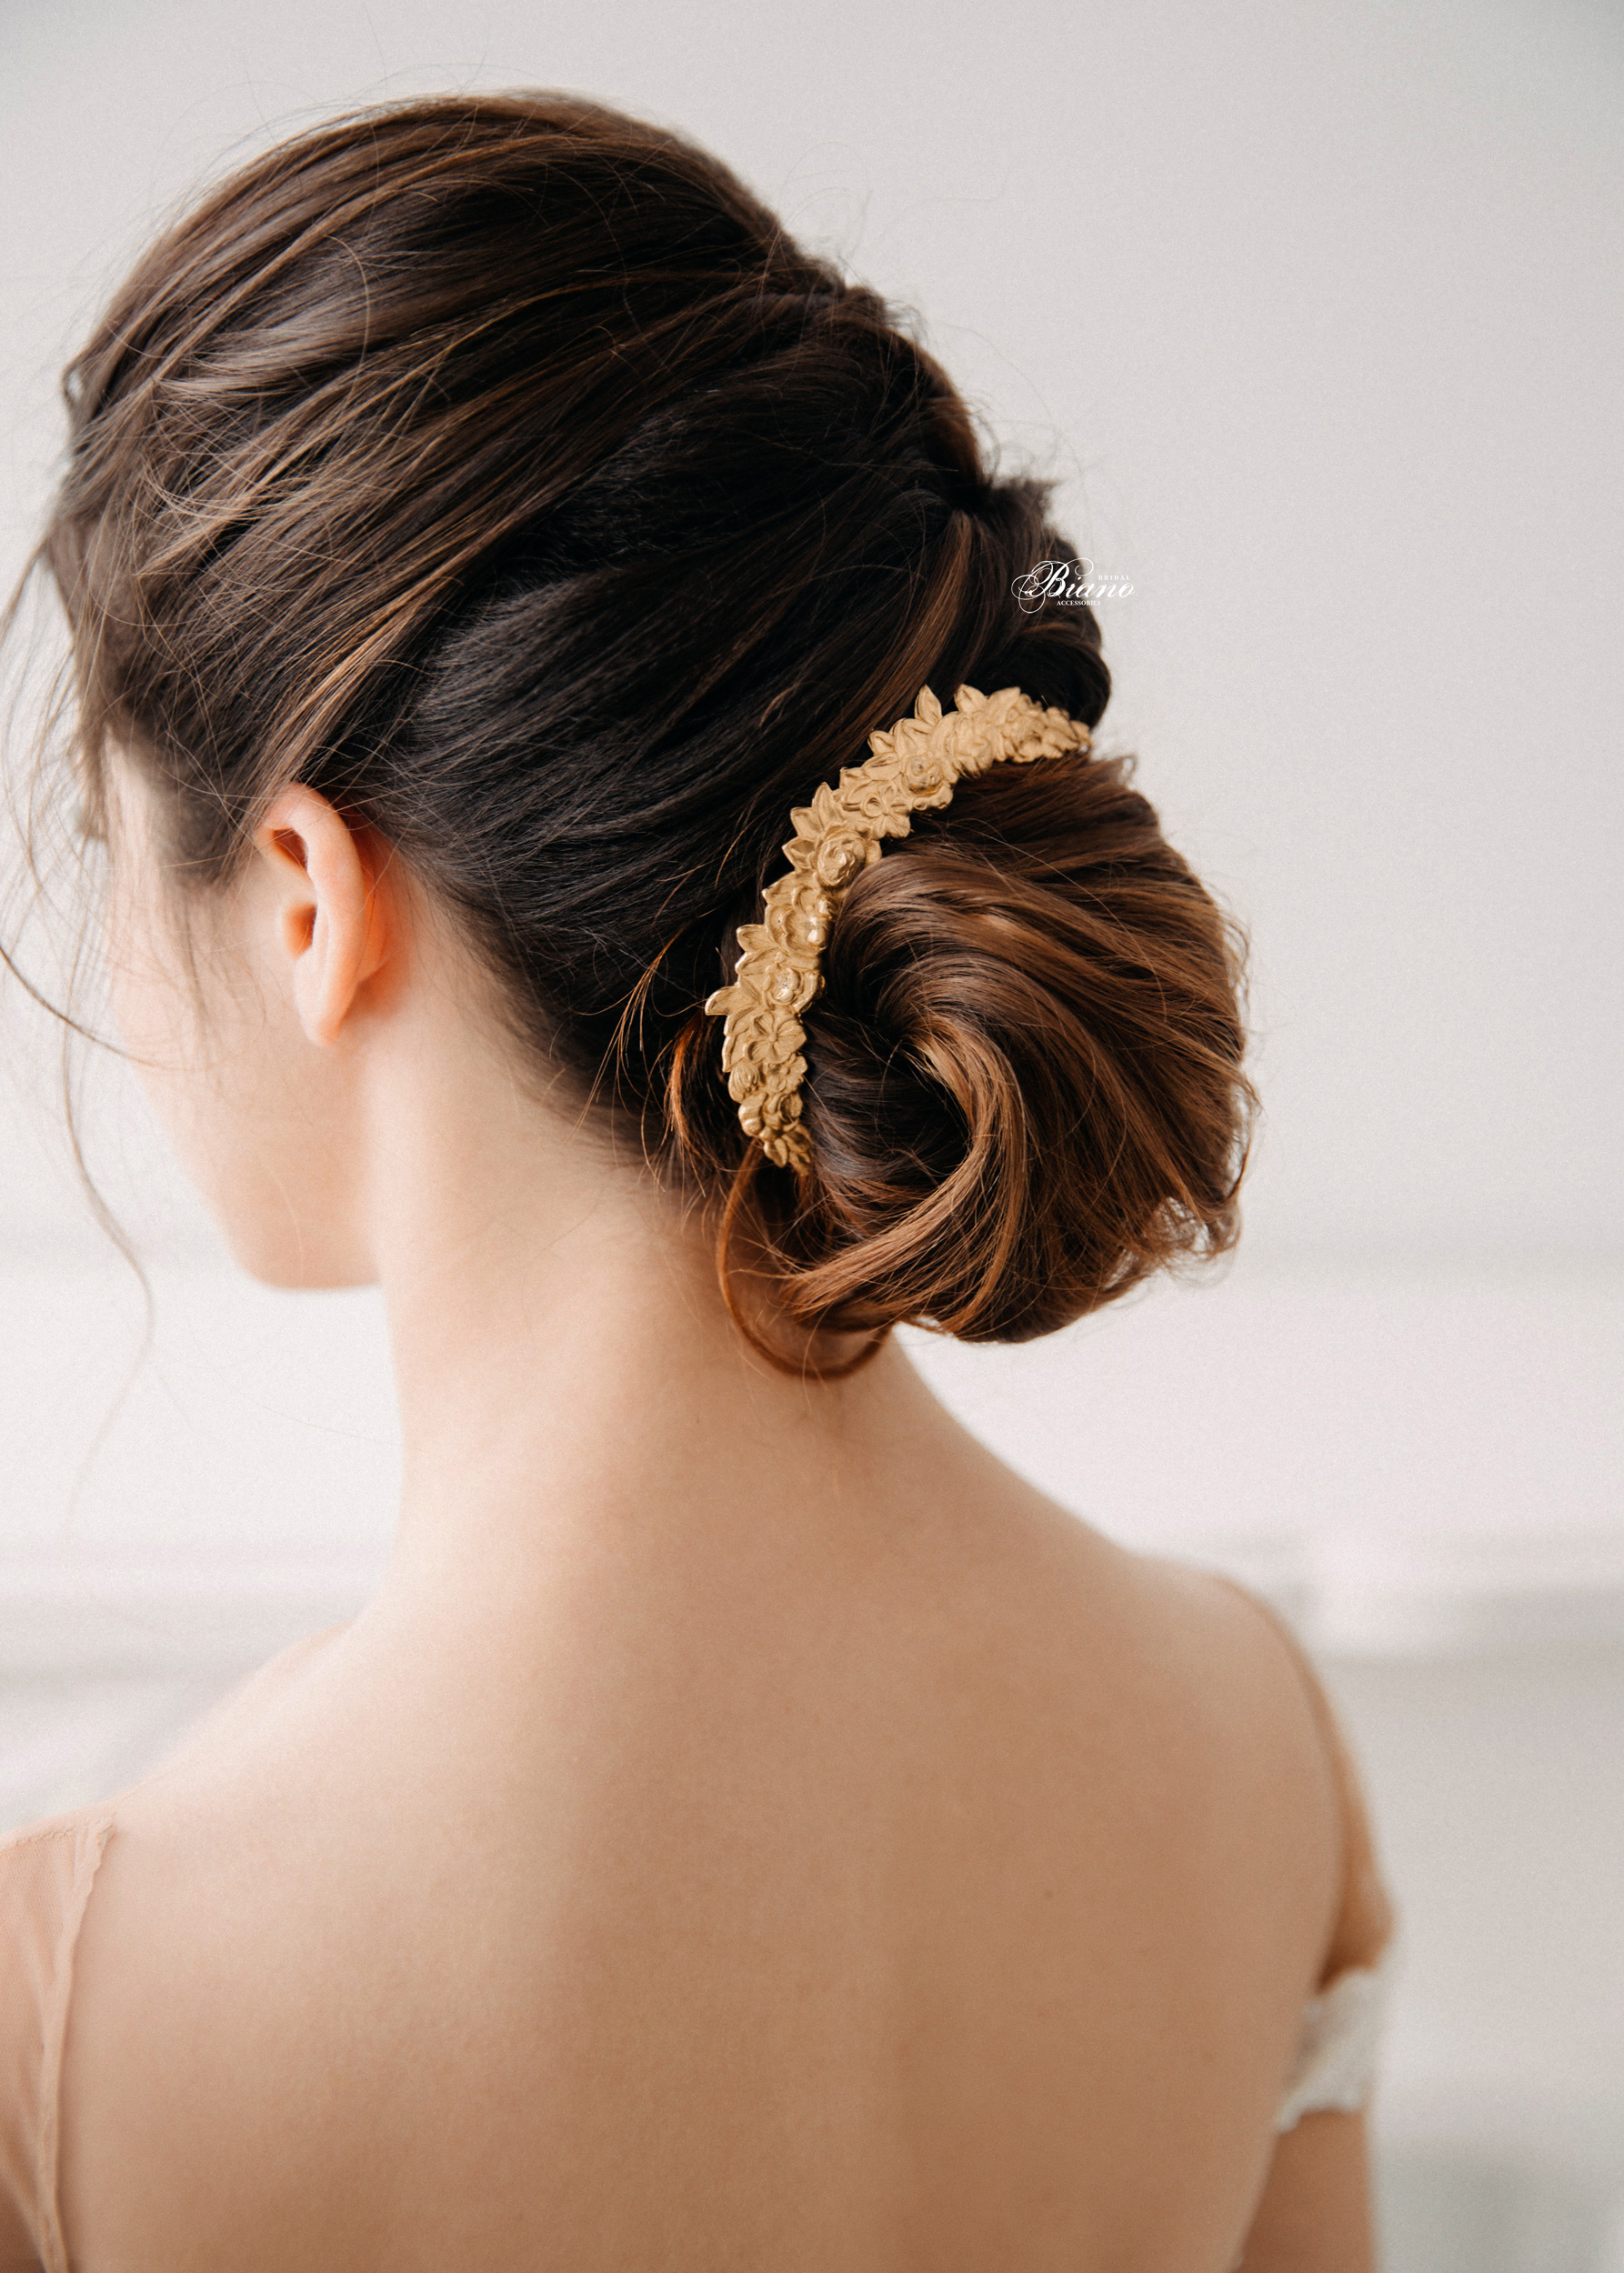 Find your perfect Bridal Hair Comb Vintage - Handmade in SwitzerlandUnique DesignPossibility to Rush OrdersFree Shipping WorldwideCustomisable OrdersFast response on your questions